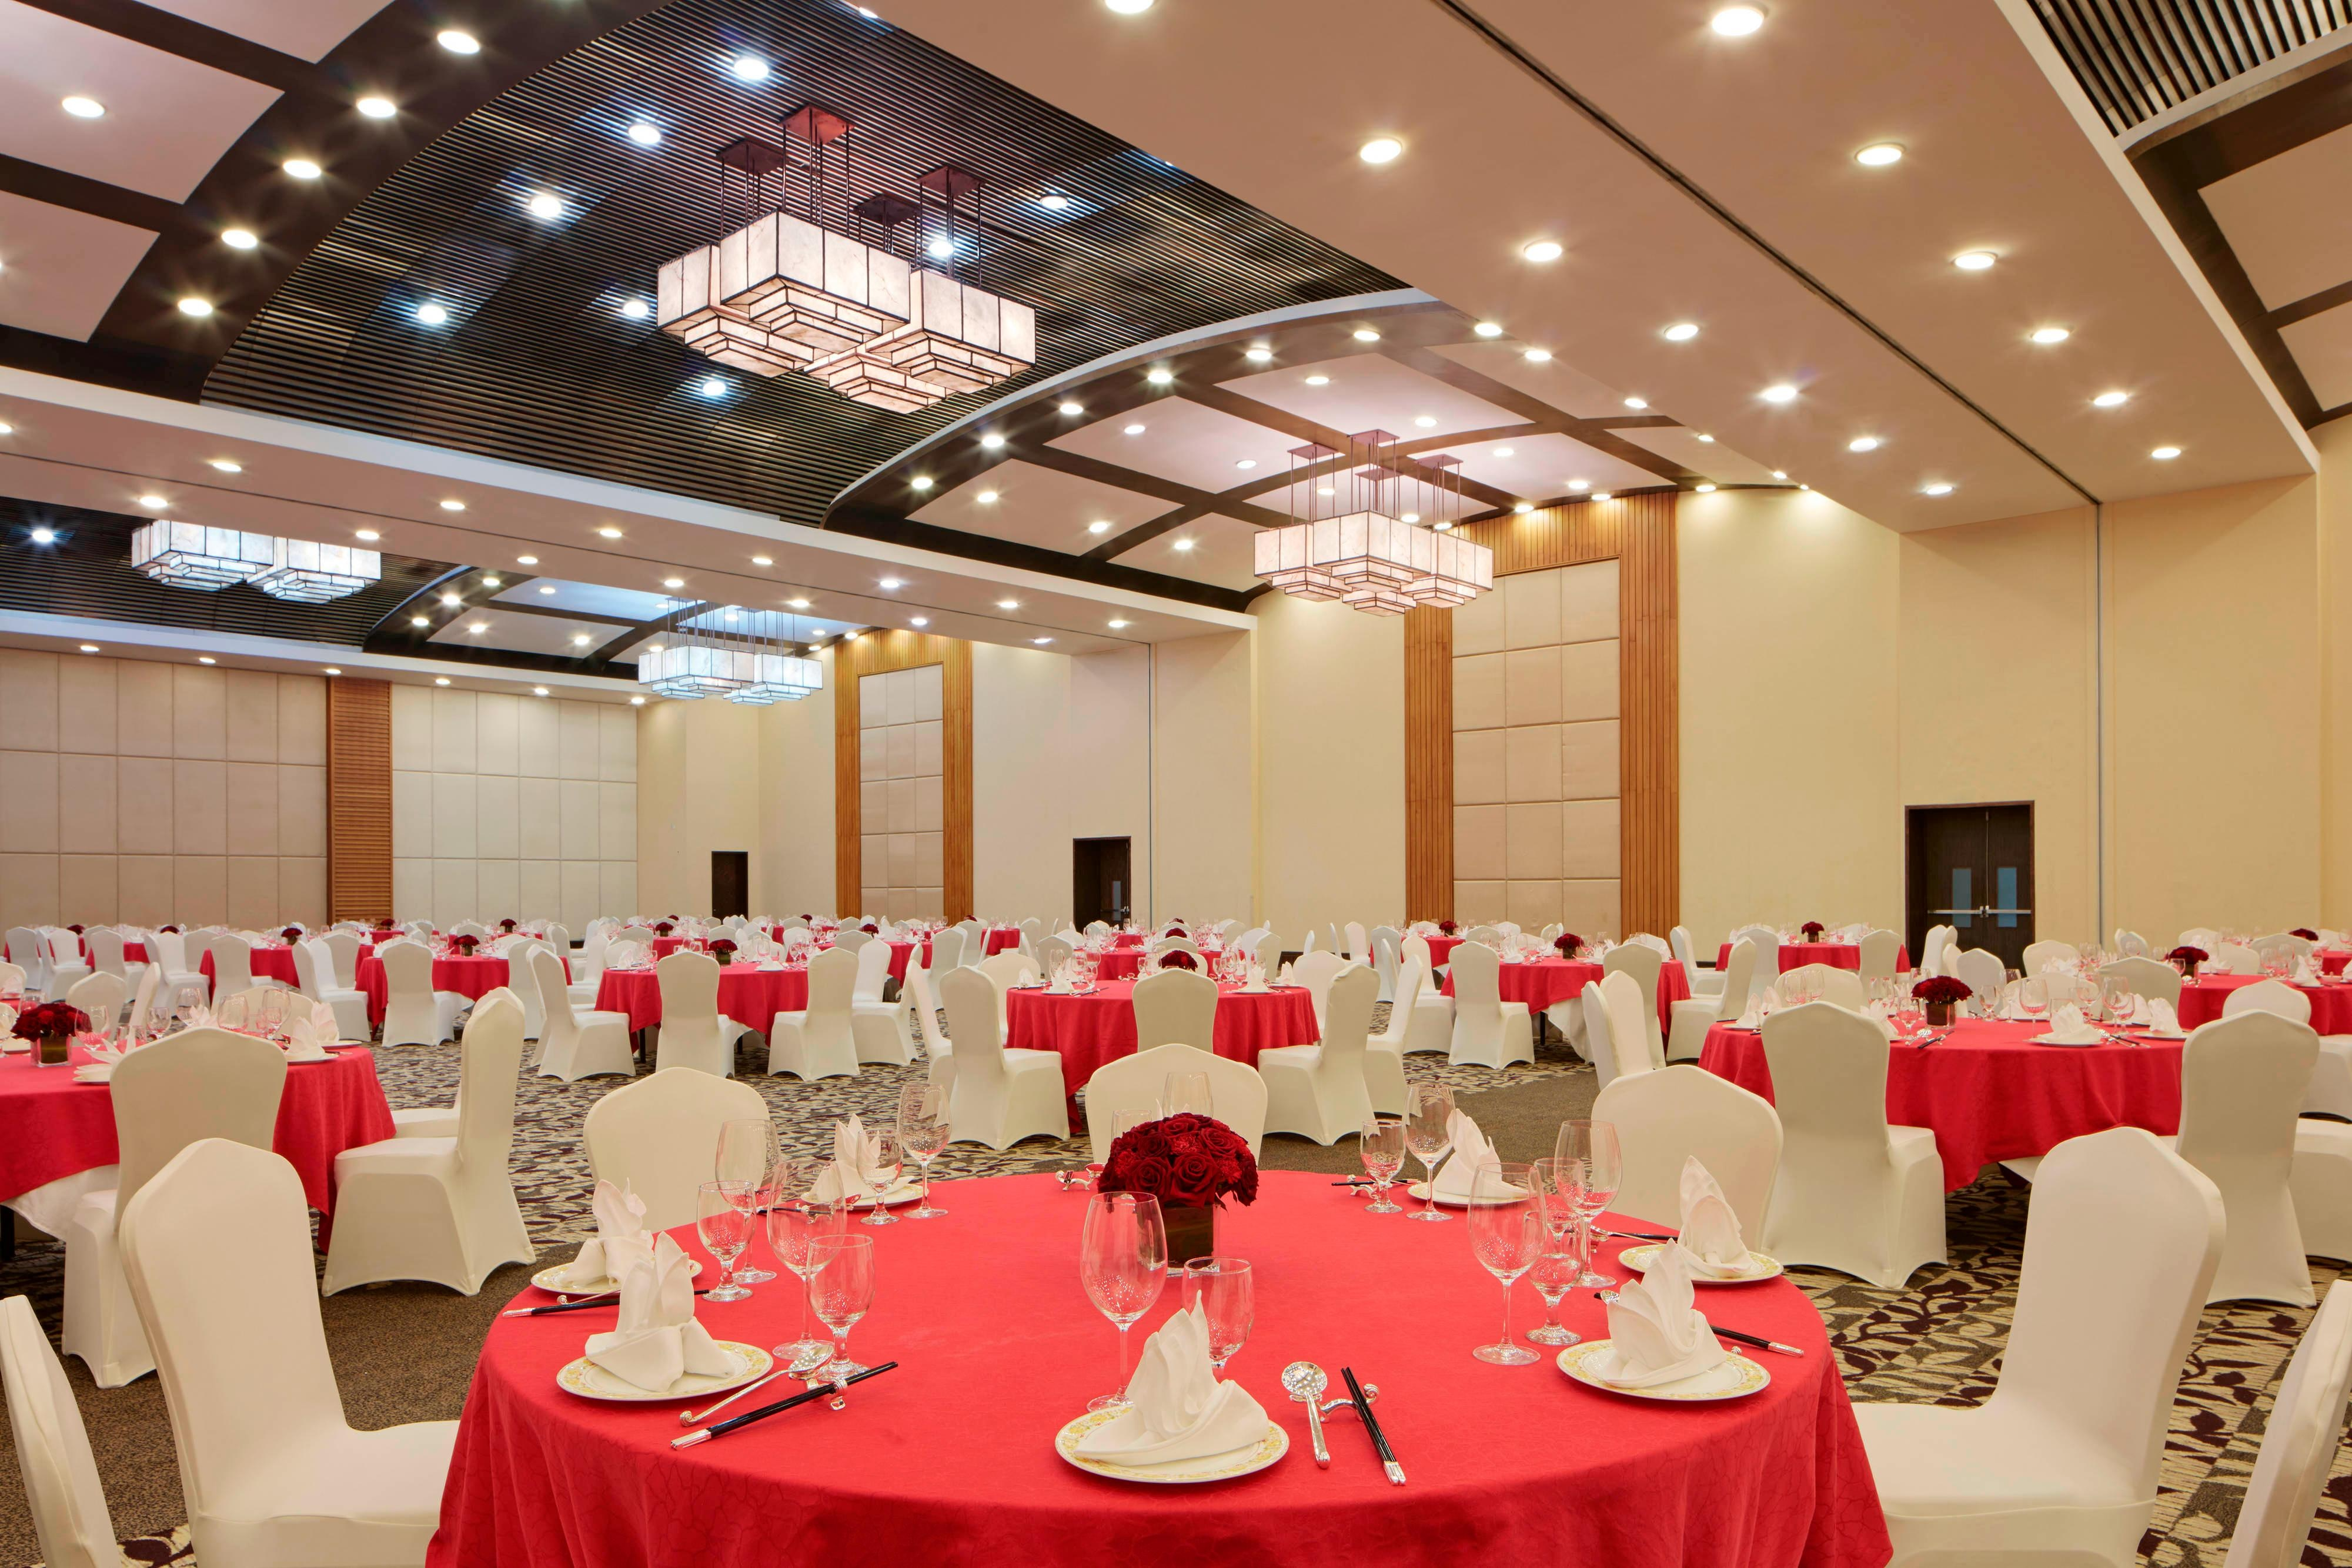 Ballroom A B C - Chinese Wedding Banquet